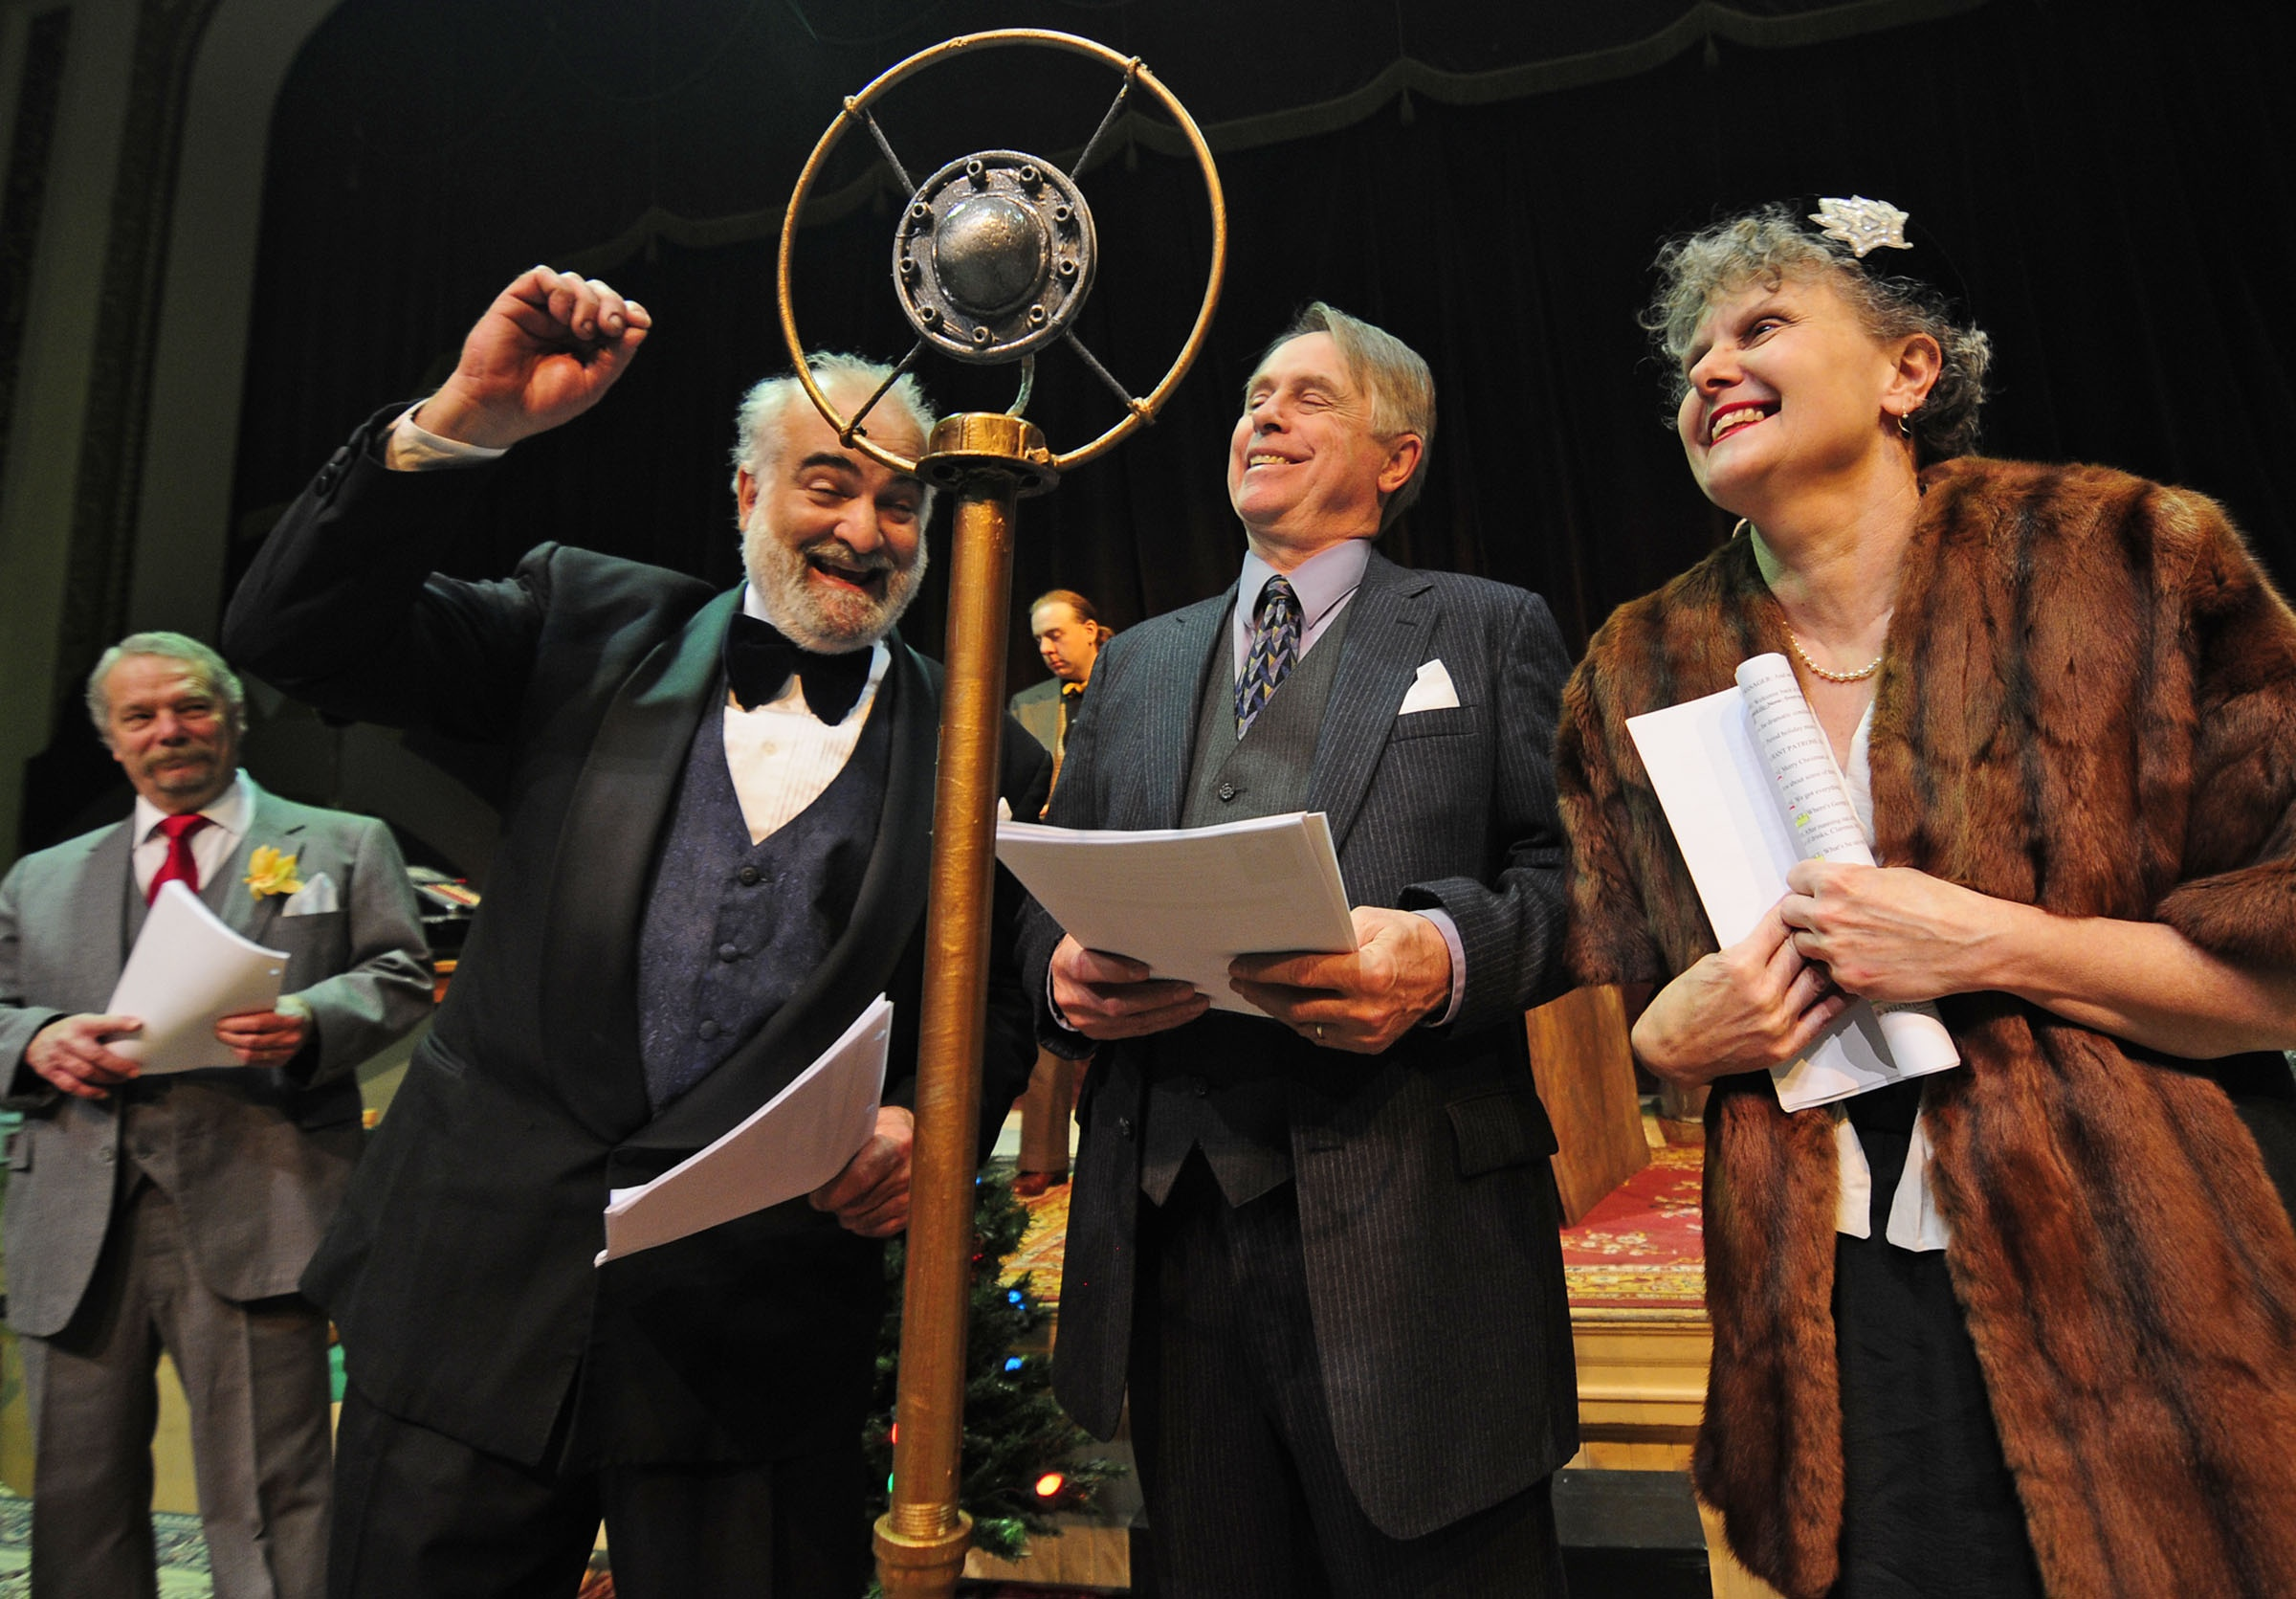 cast cheers for money being raised - photo by Stefan Hard, the Times Argus